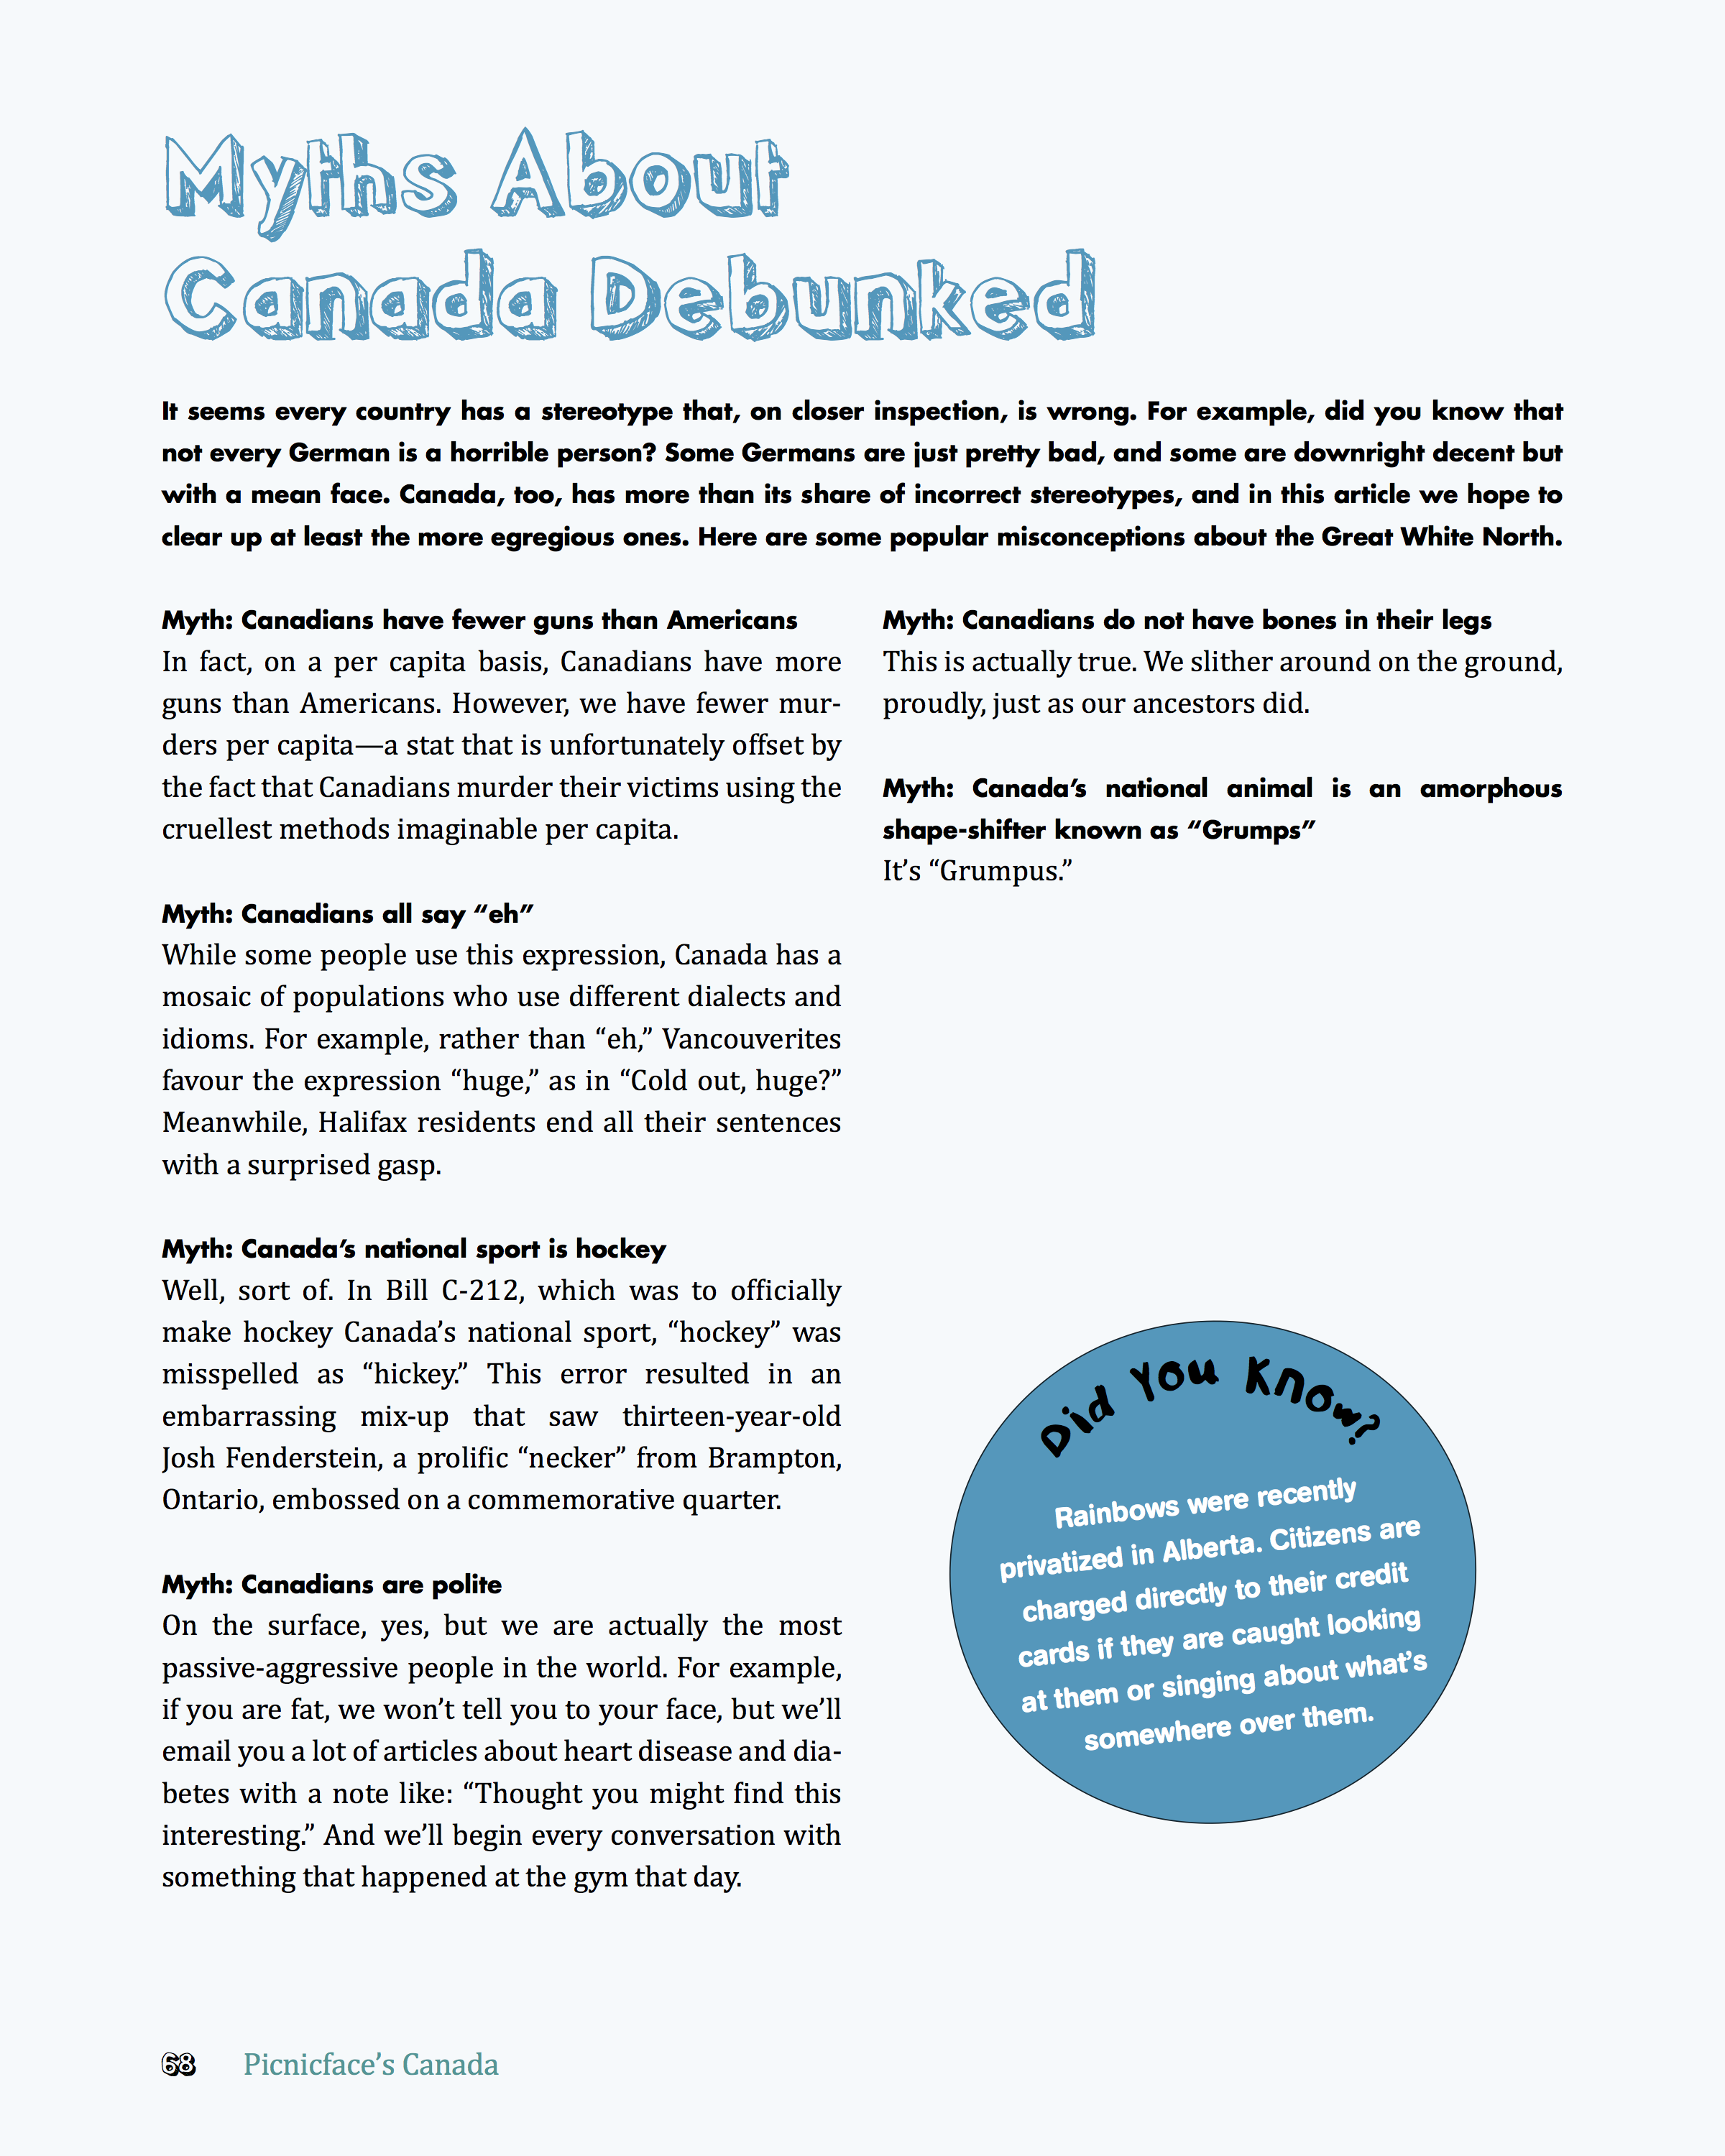 Myths About Canada Debunked.png